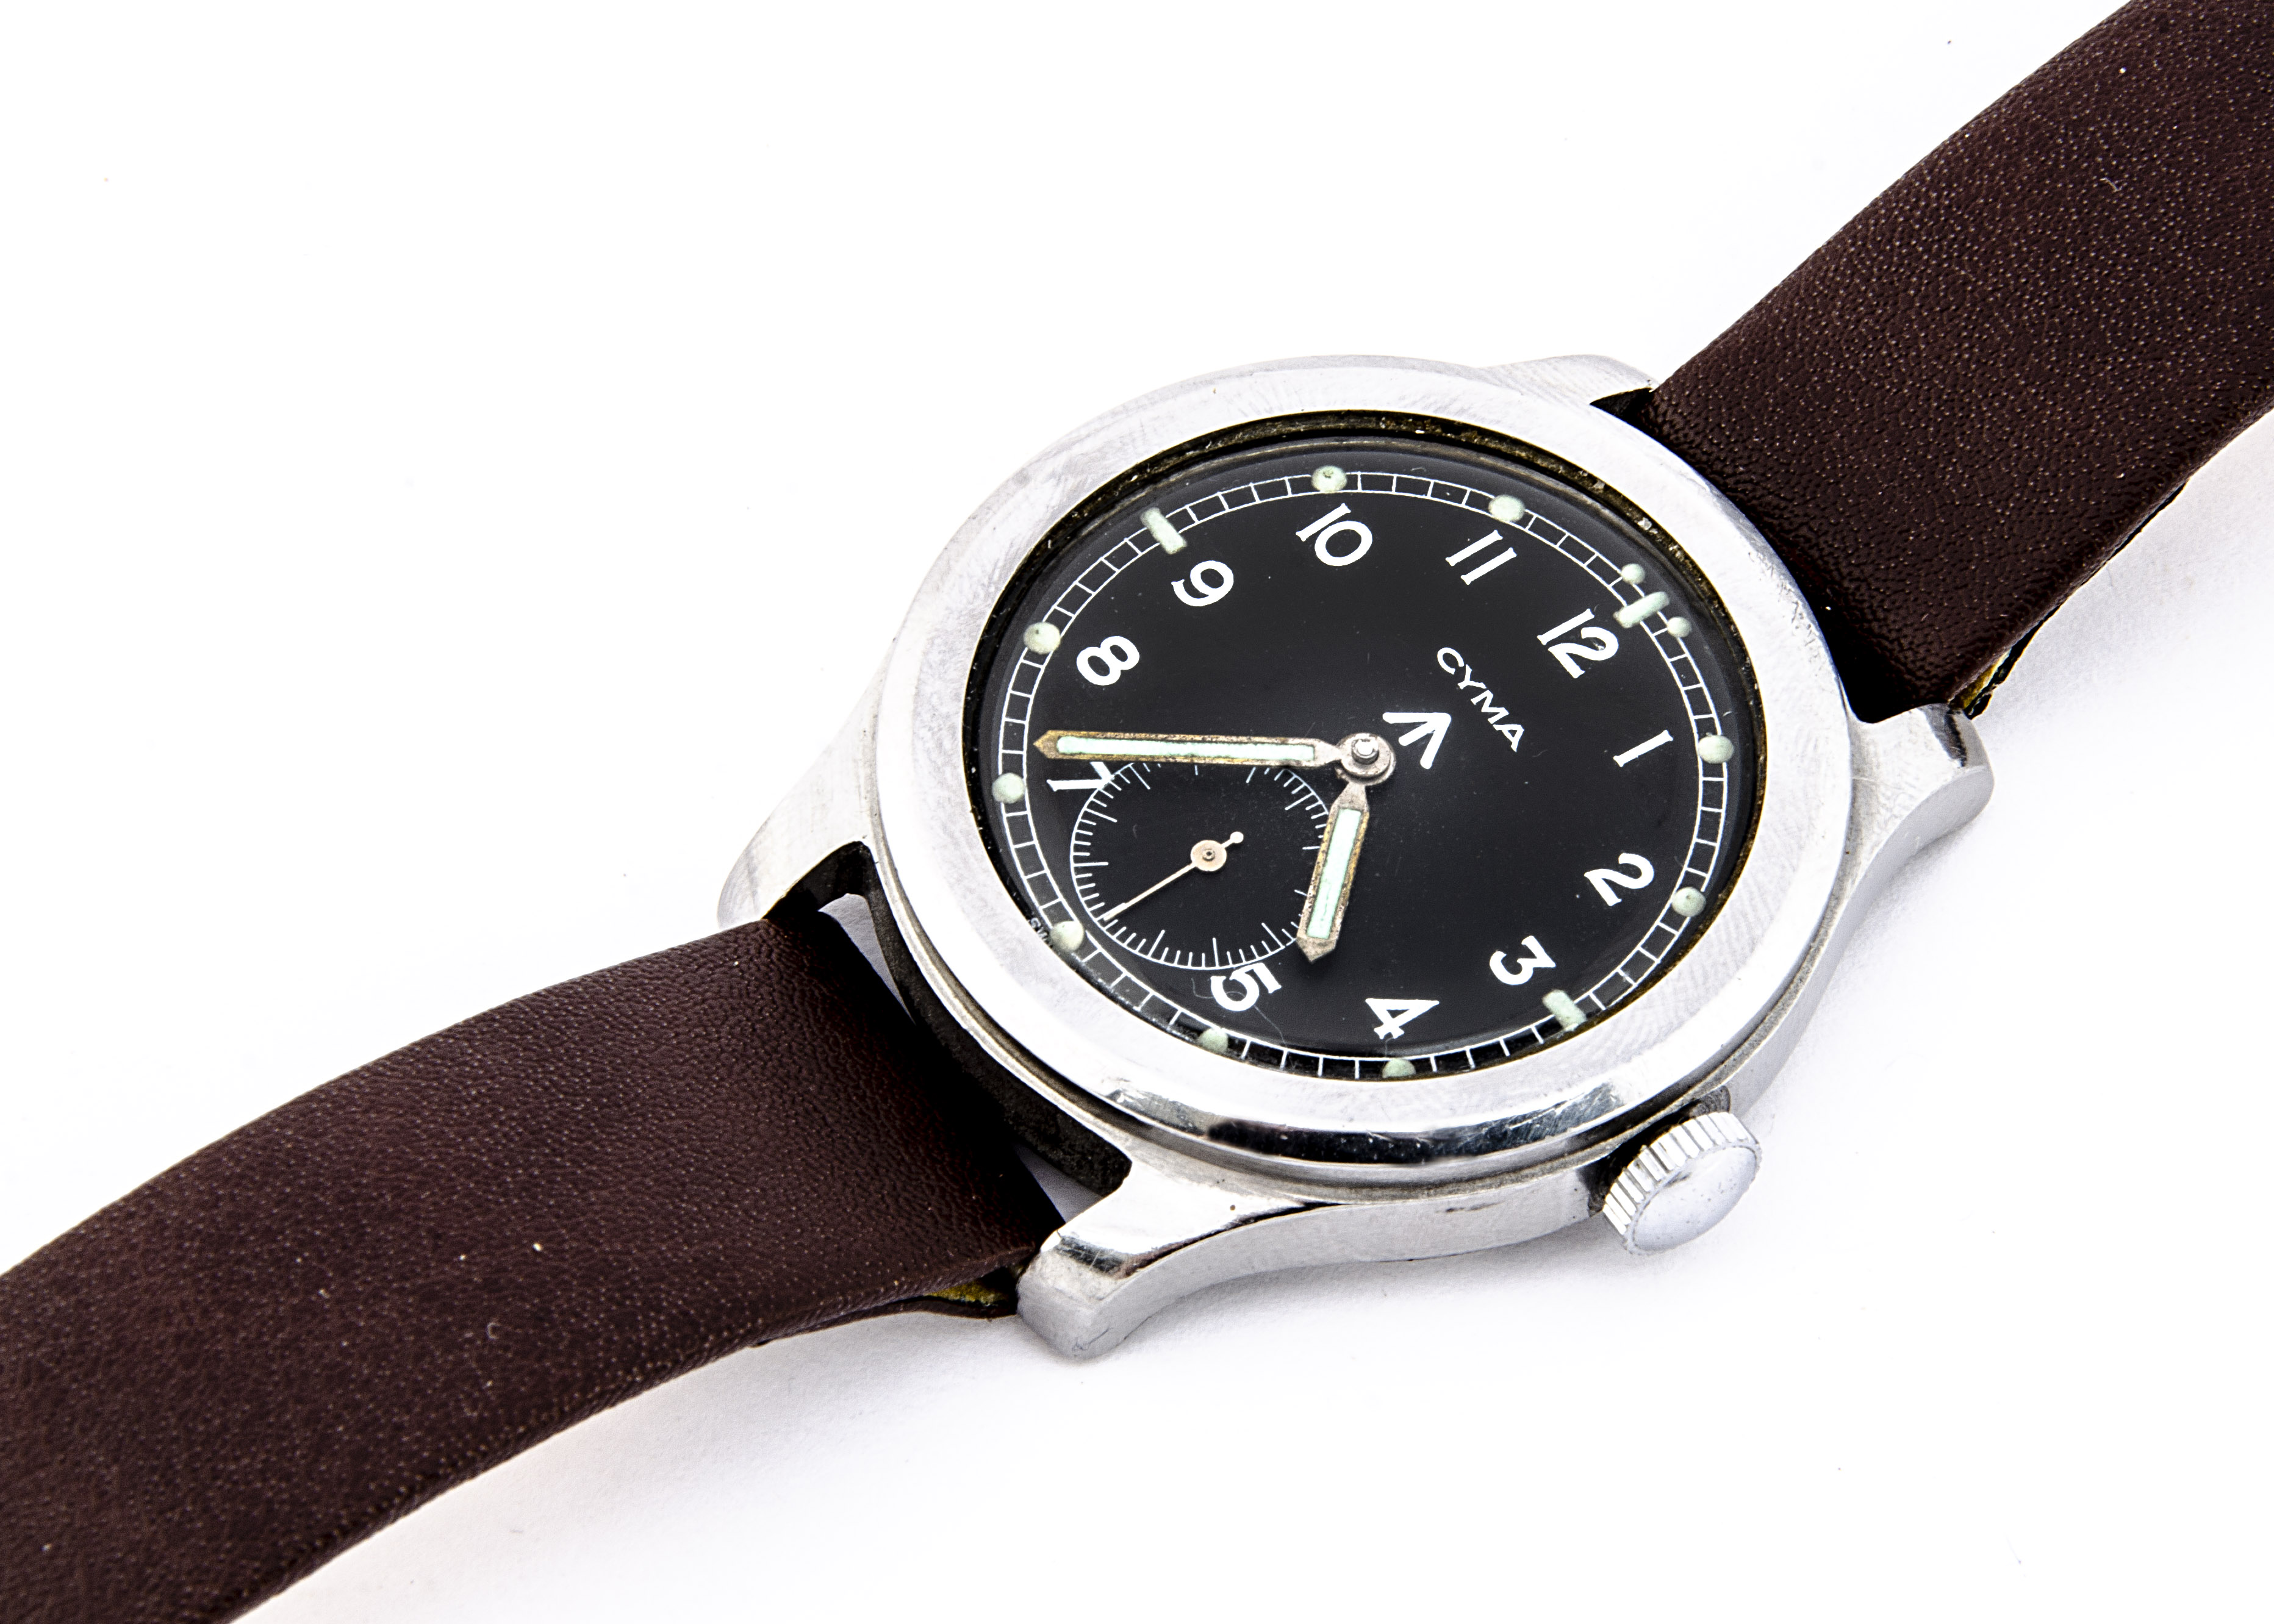 """A c1940s Cyma WWW Military """"Dirty Dozen"""" stainless steel wristwatch, 37mm case, running, black - Image 4 of 7"""